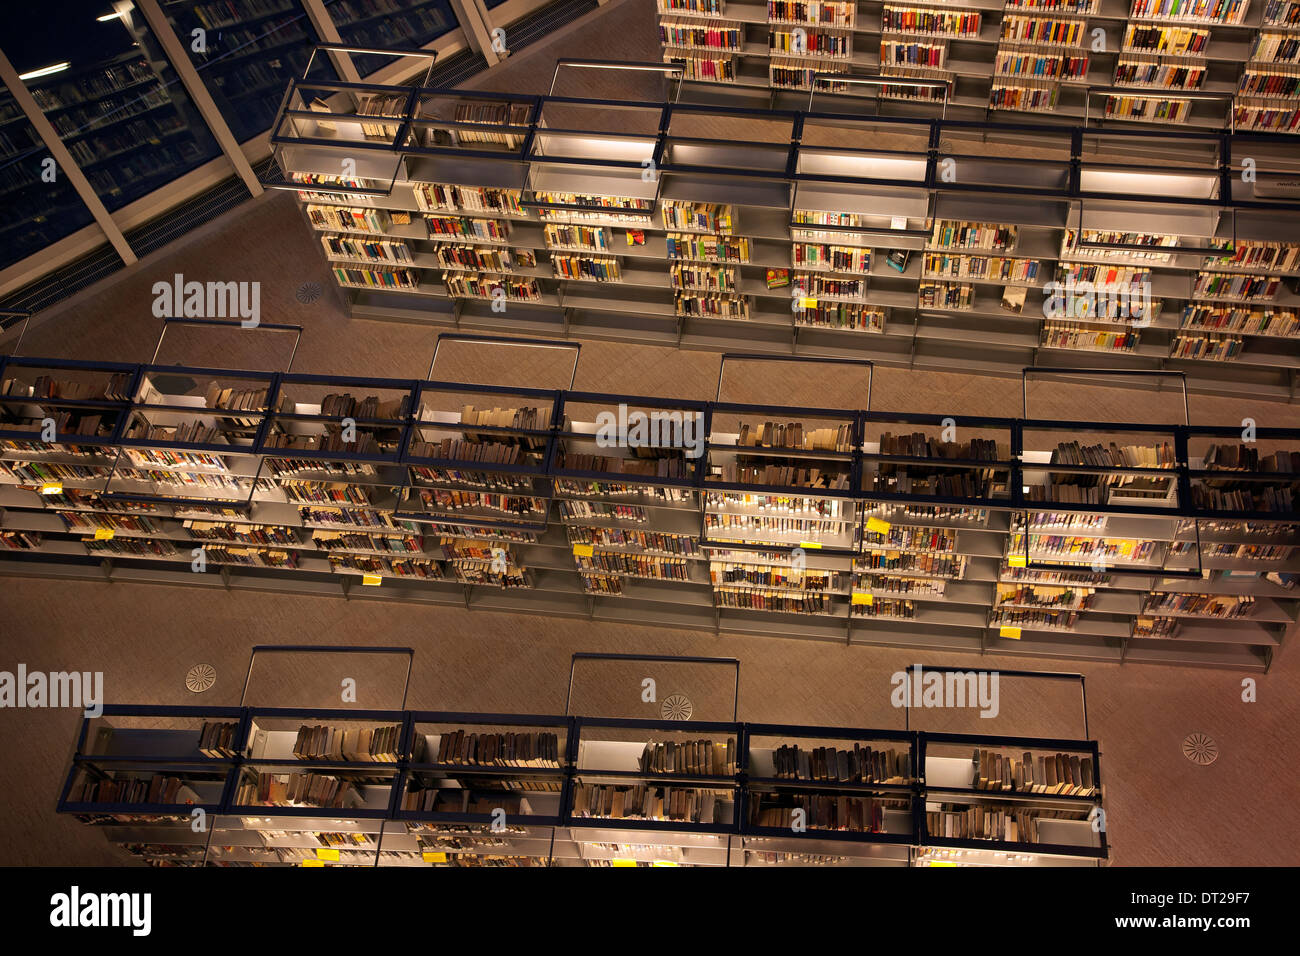 WASHINGTON - View of the book shelves in the downtown Seattle Public Library building. - Stock Image